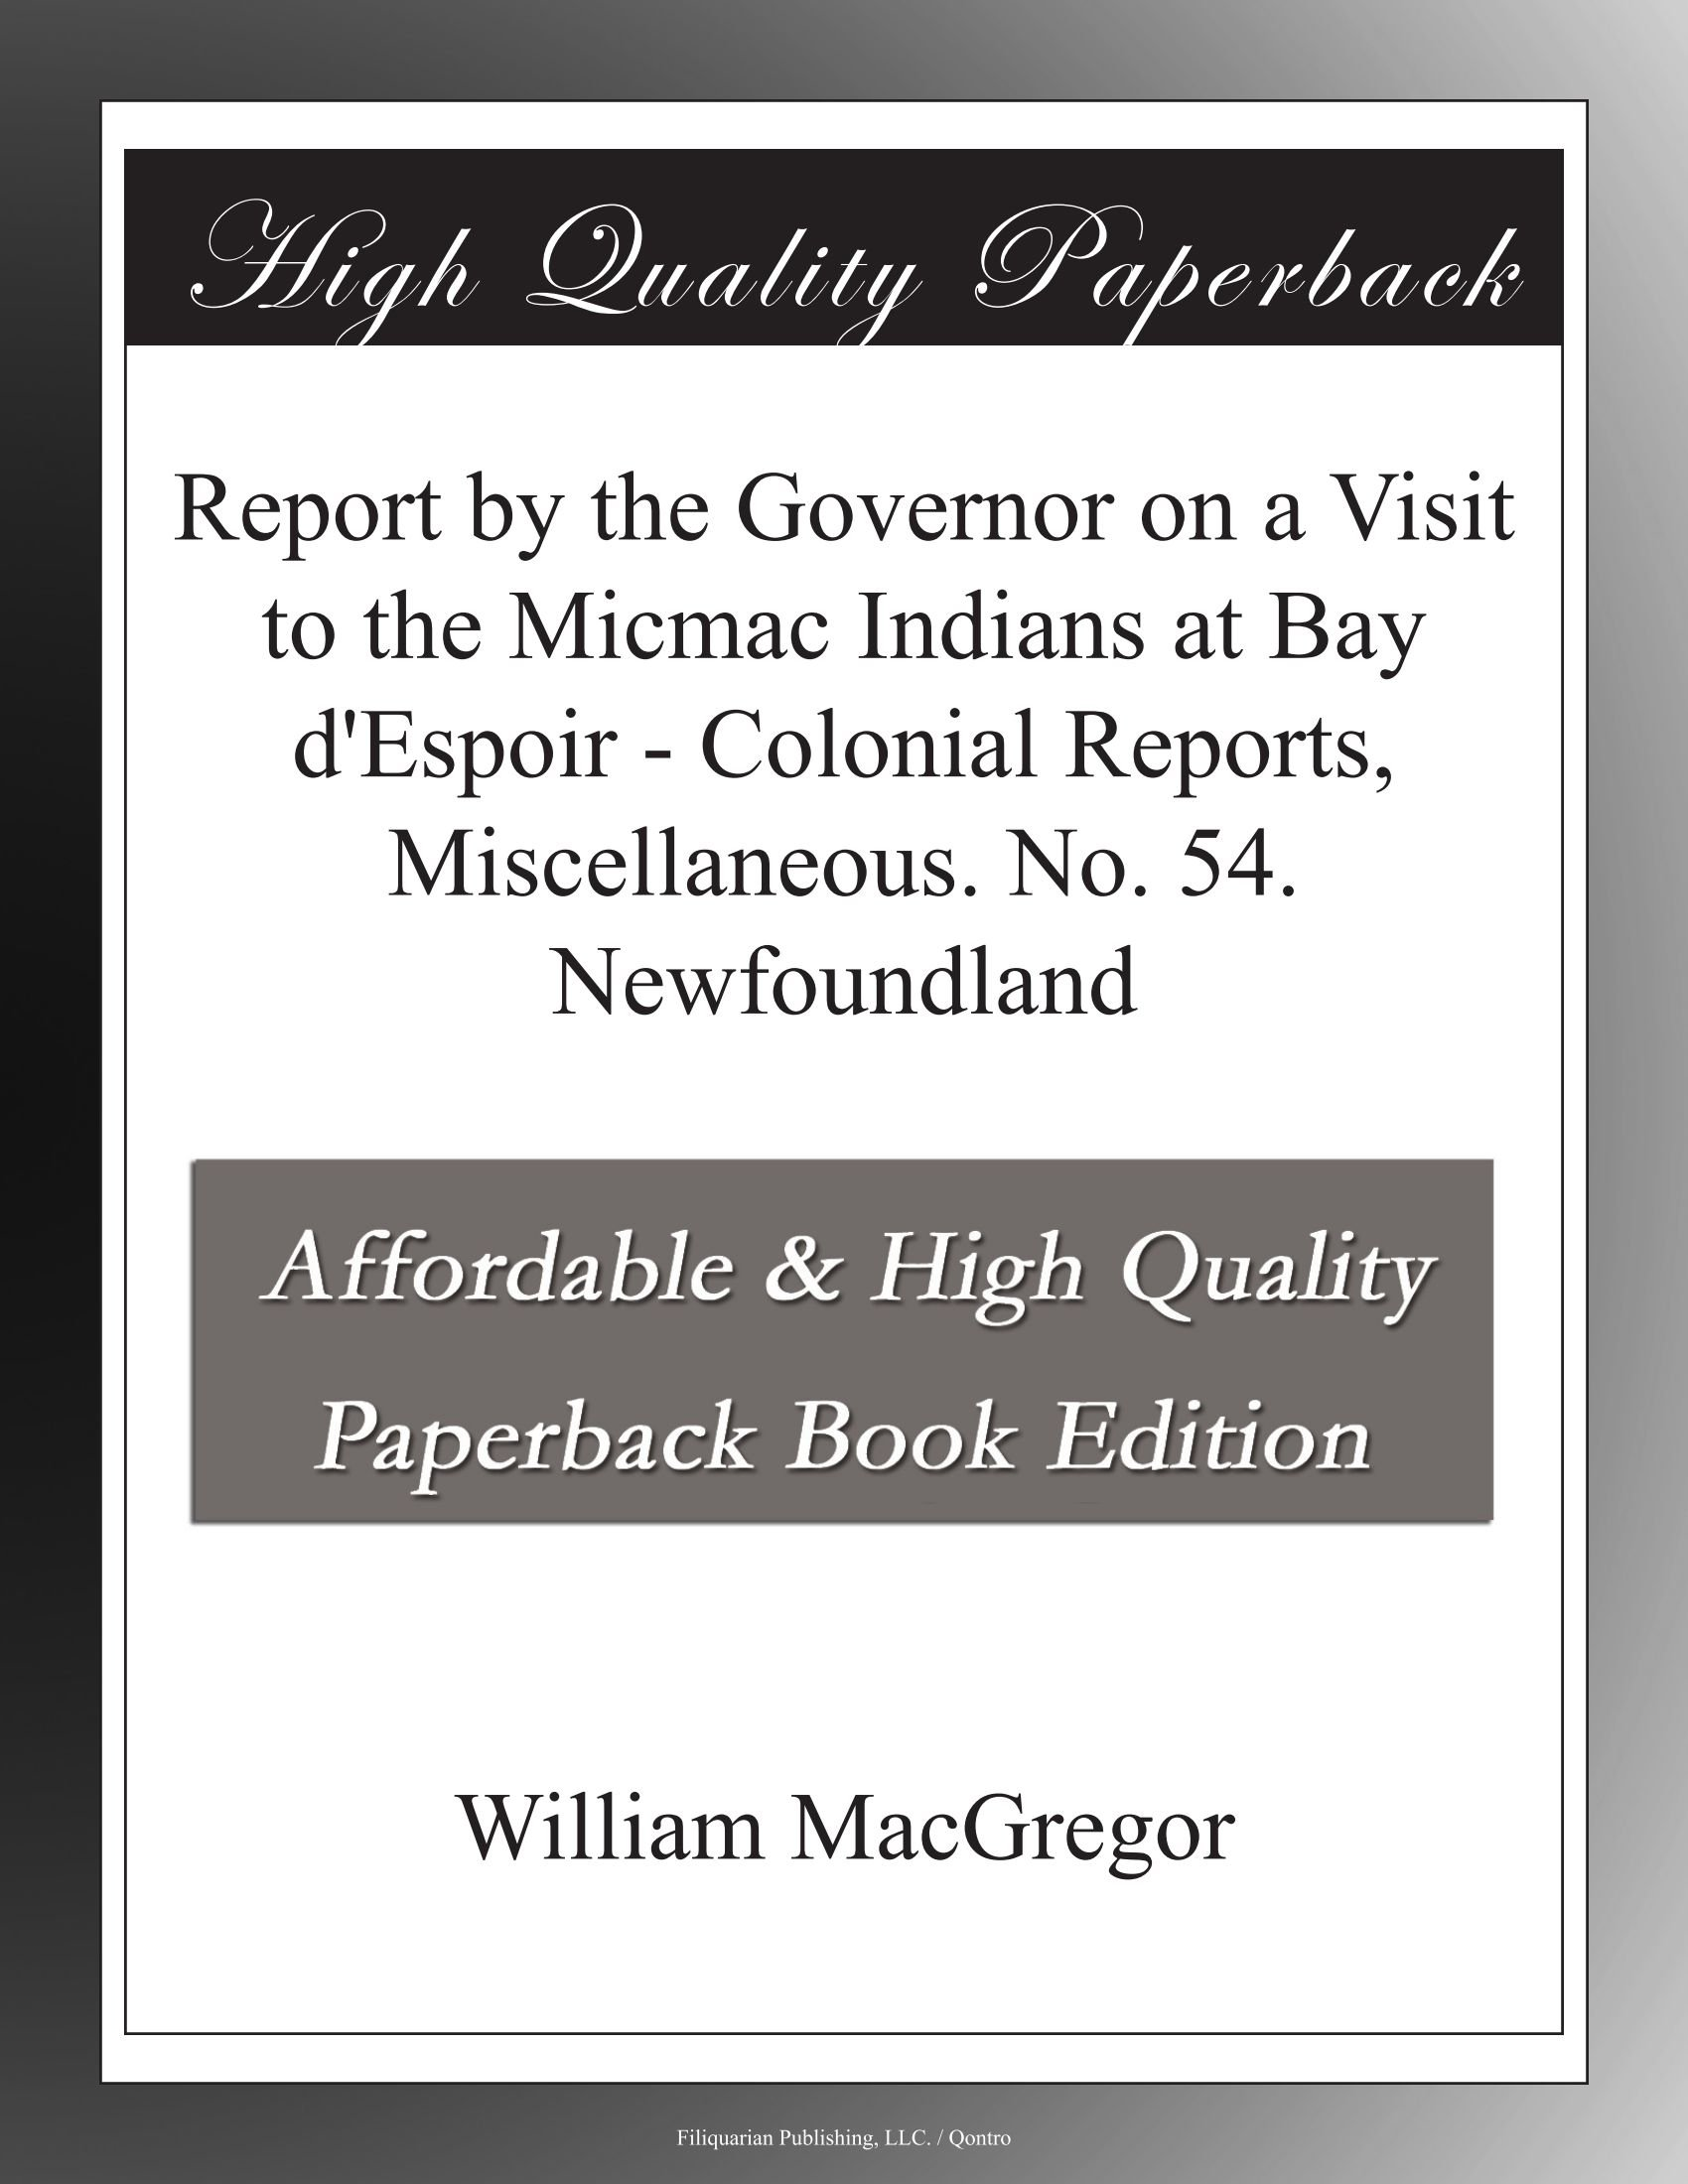 Download Report by the Governor on a Visit to the Micmac Indians at Bay d'Espoir - Colonial Reports, Miscellaneous. No. 54. Newfoundland ebook